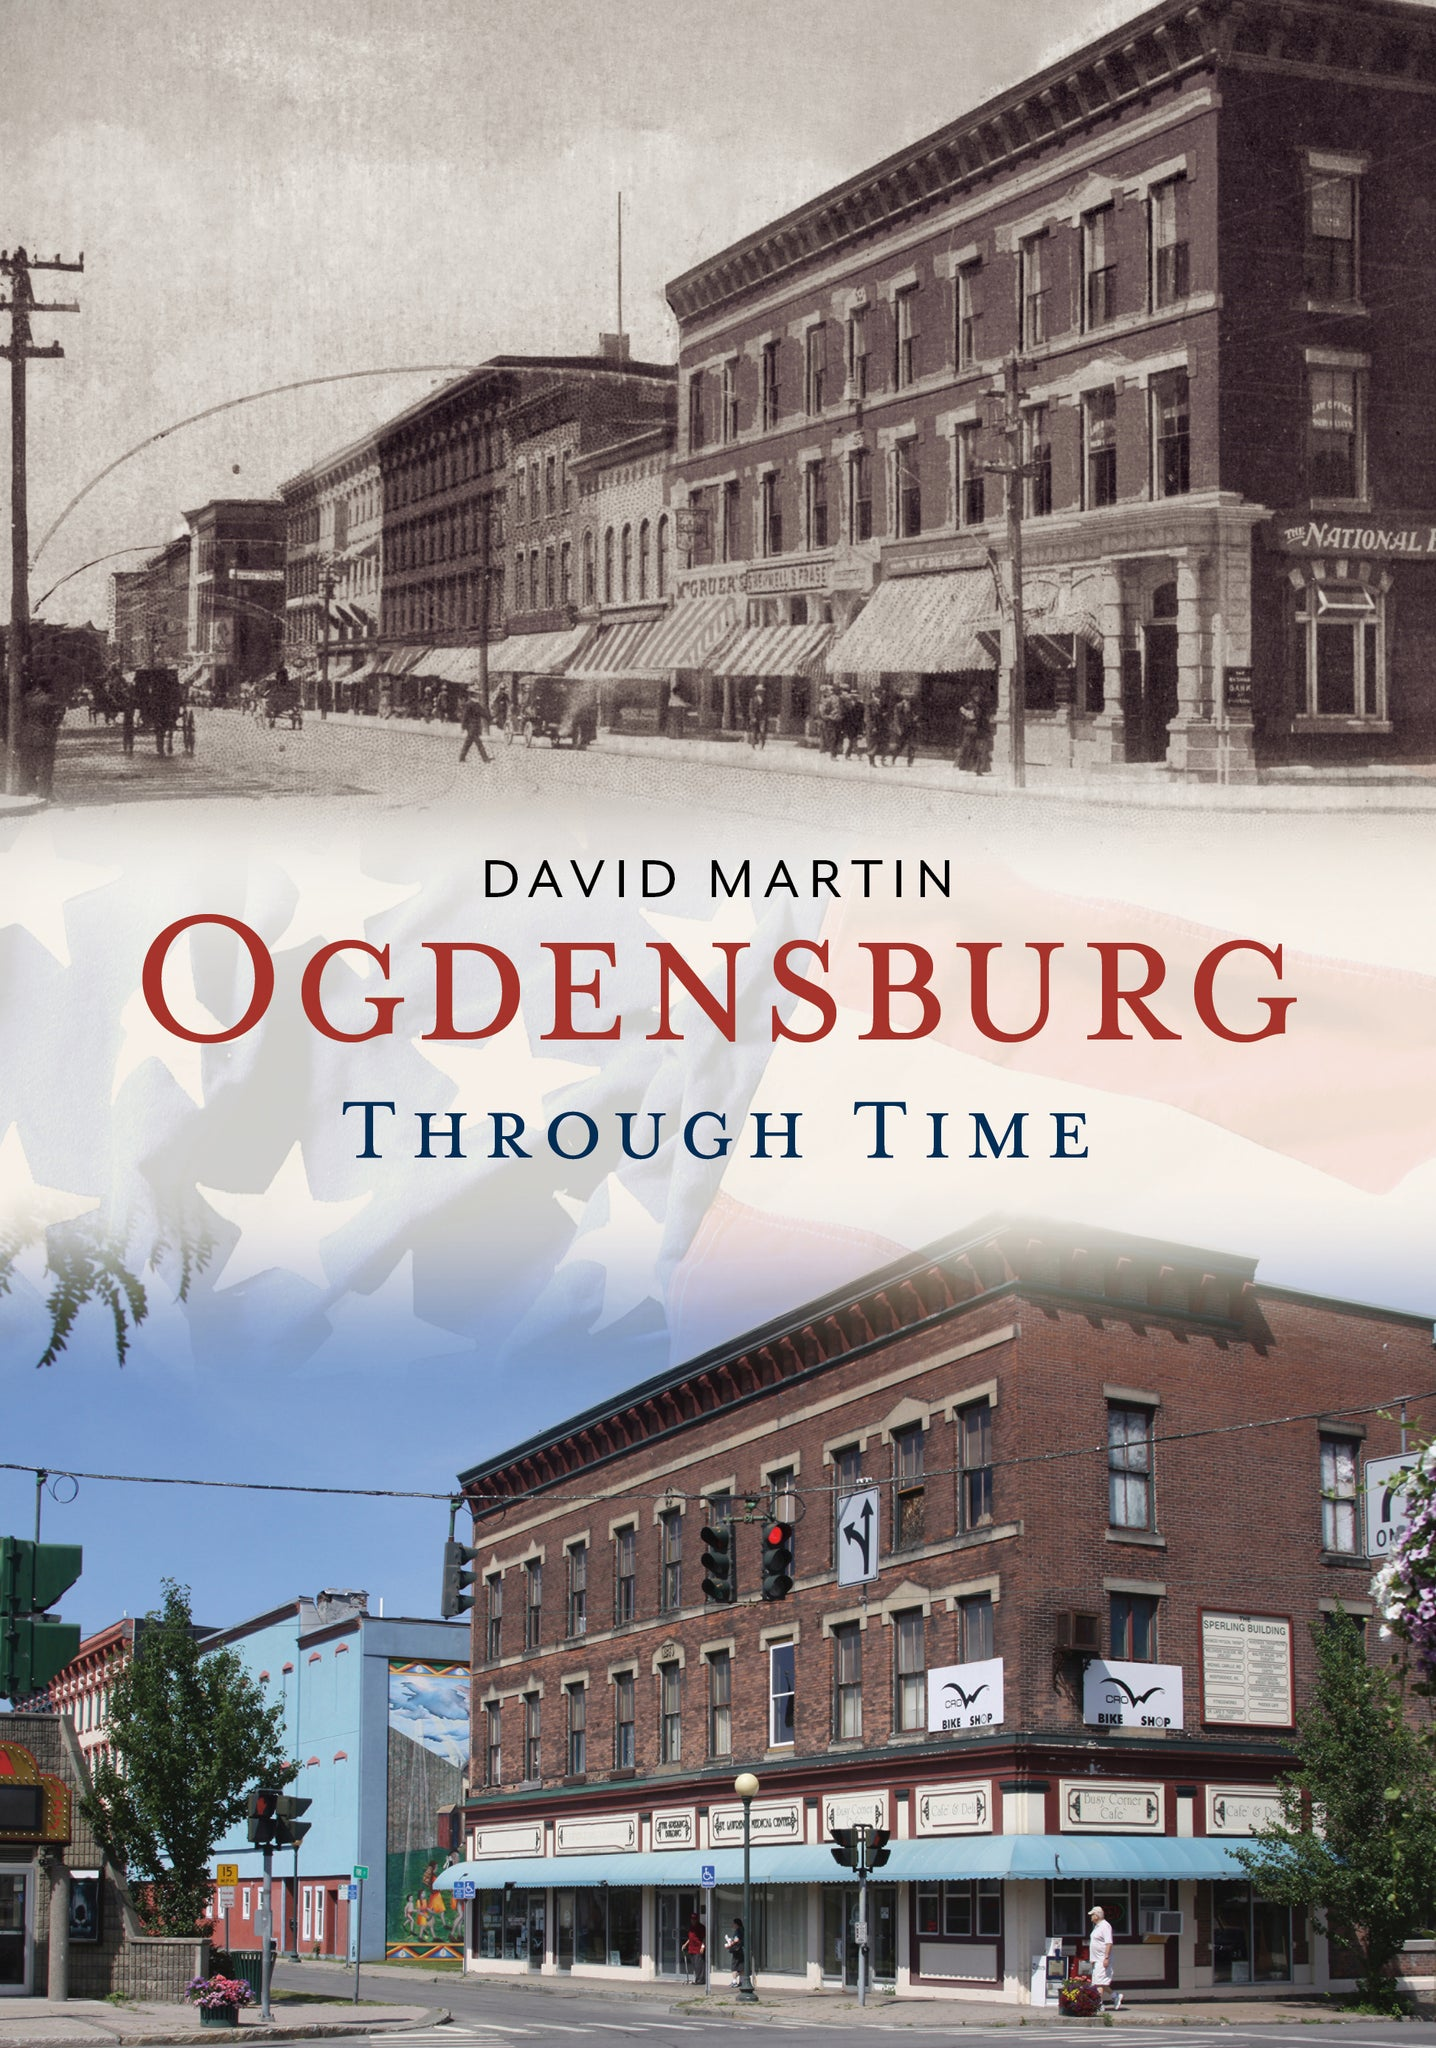 Ogdensburg Through Time